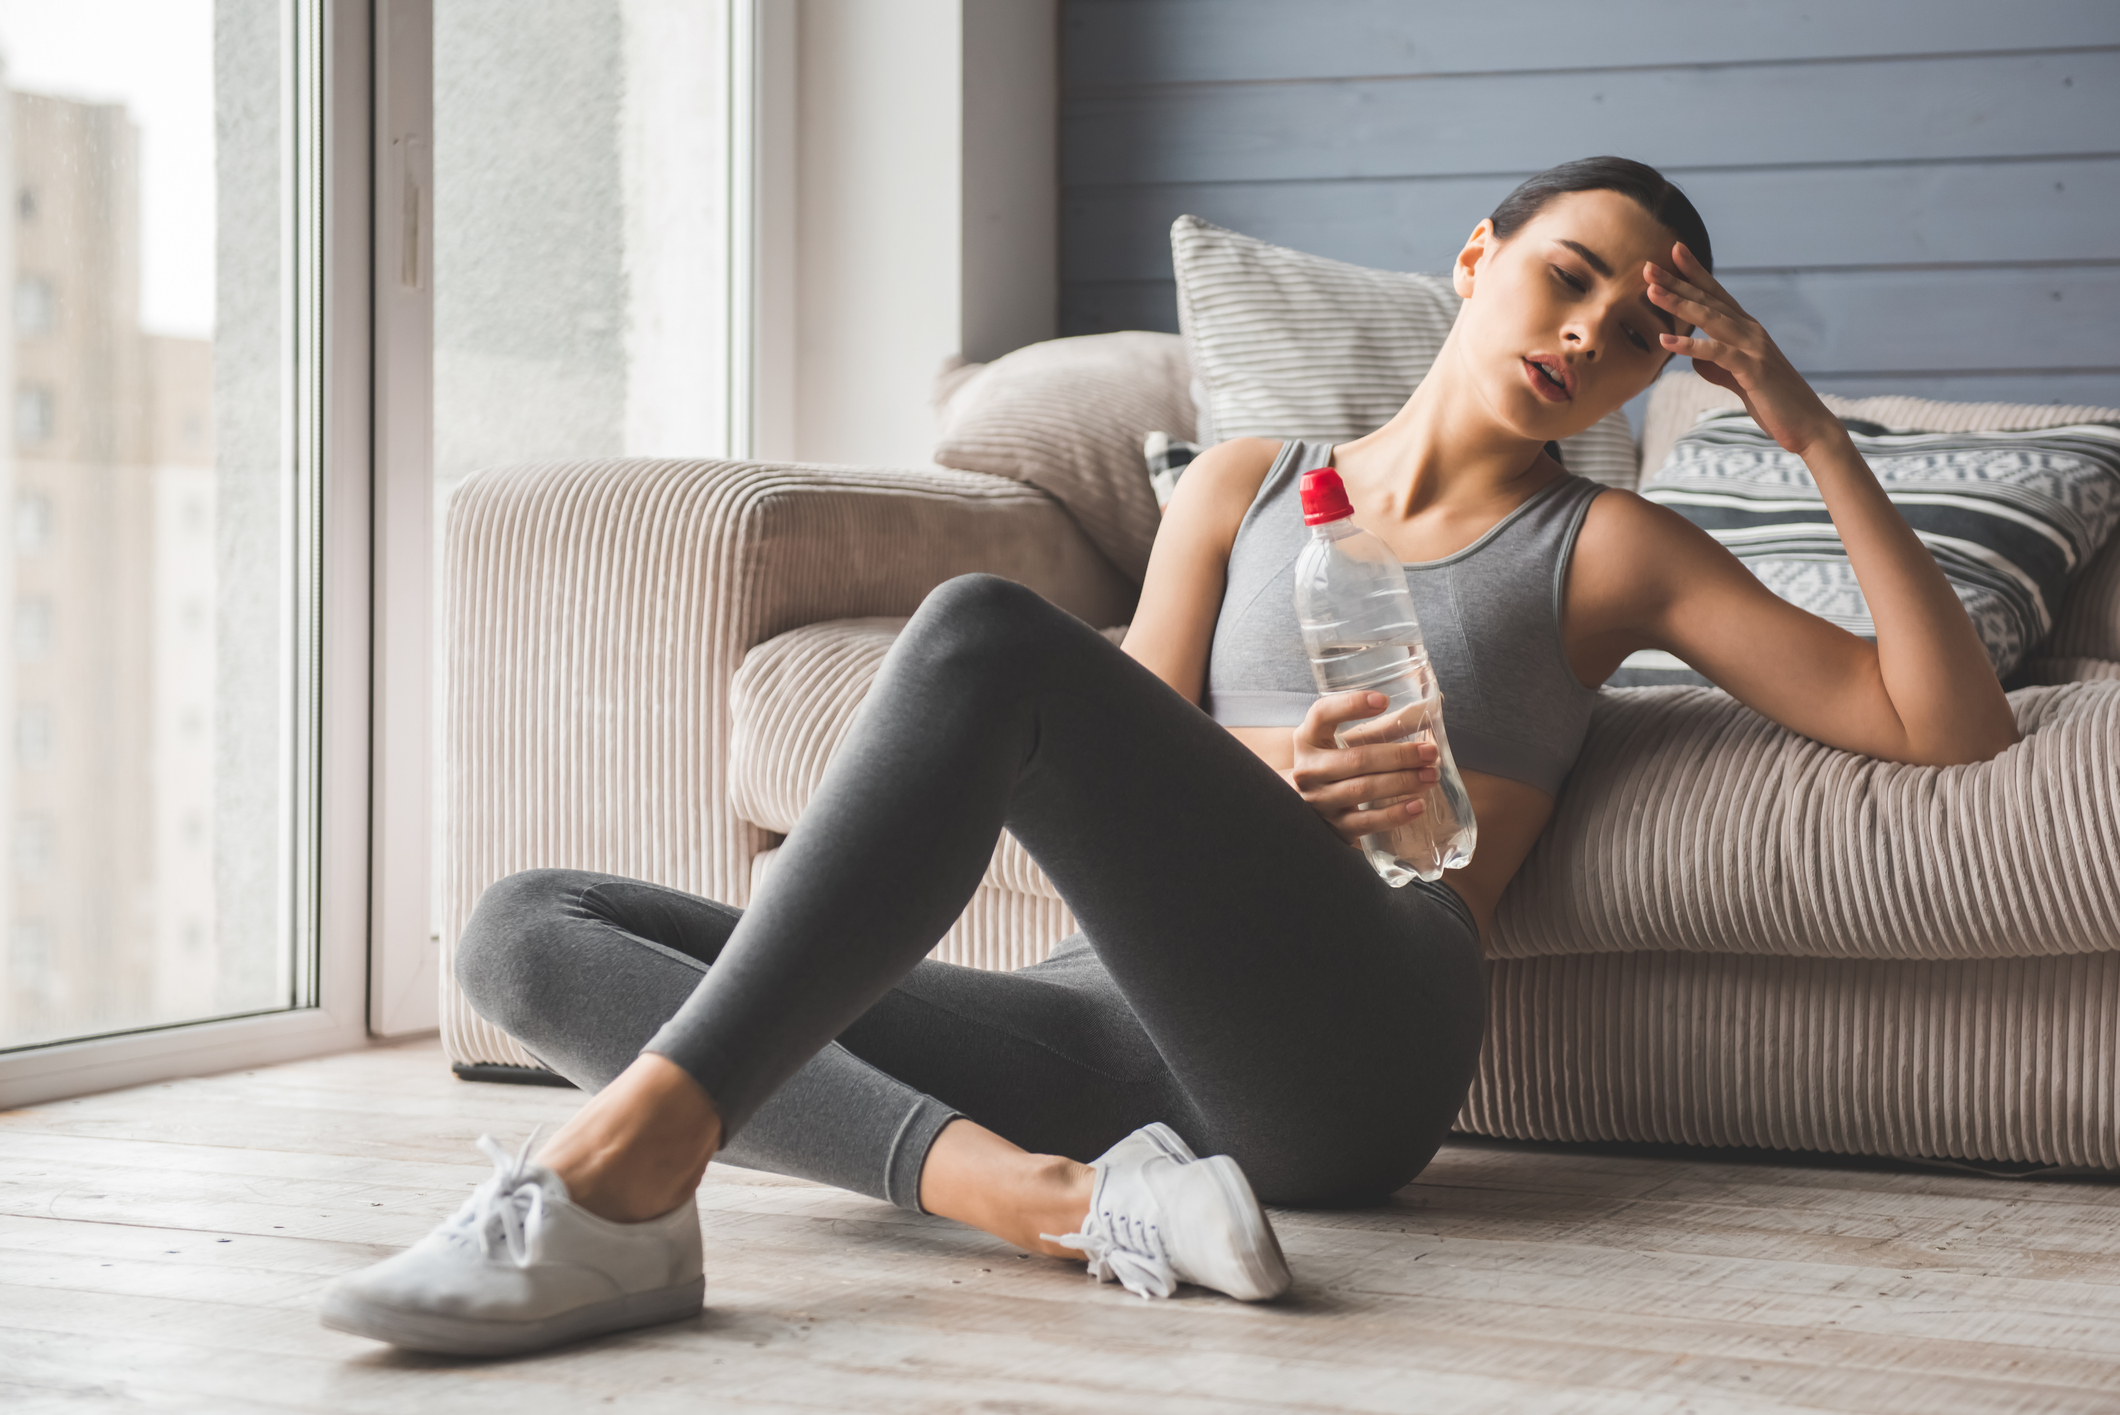 Young woman feeling faint, drinking water